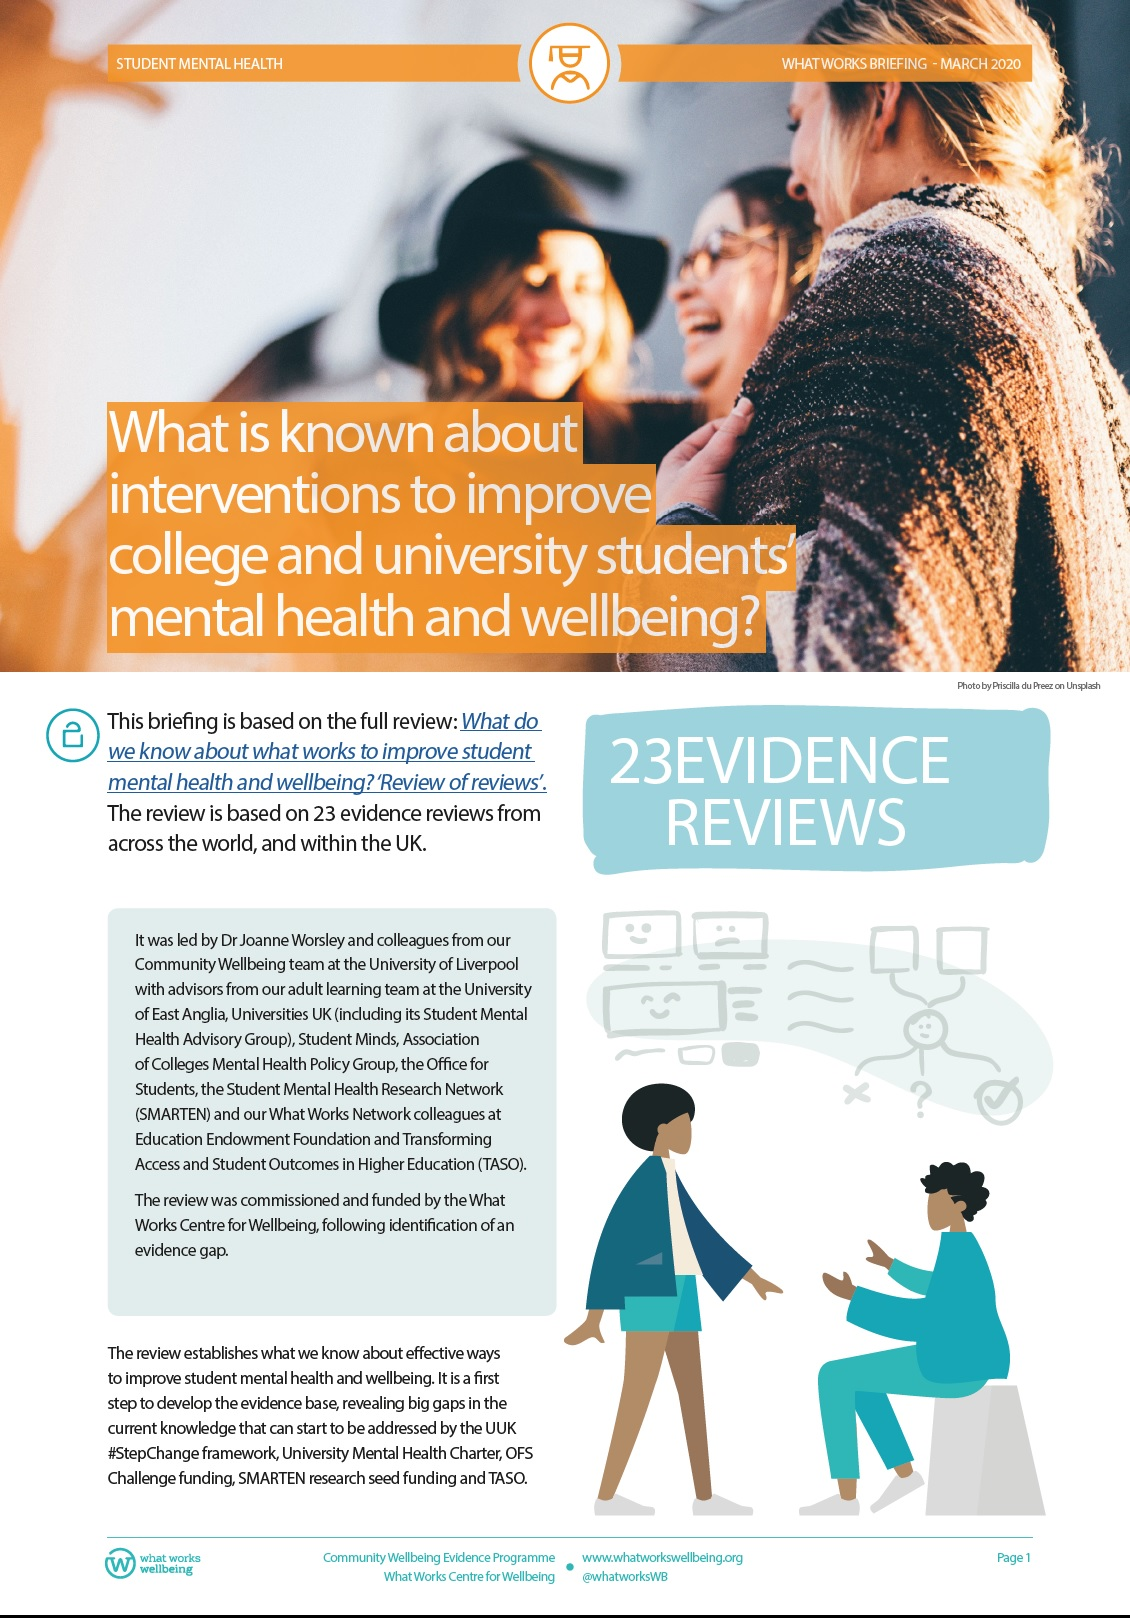 Student mental health review of reviews